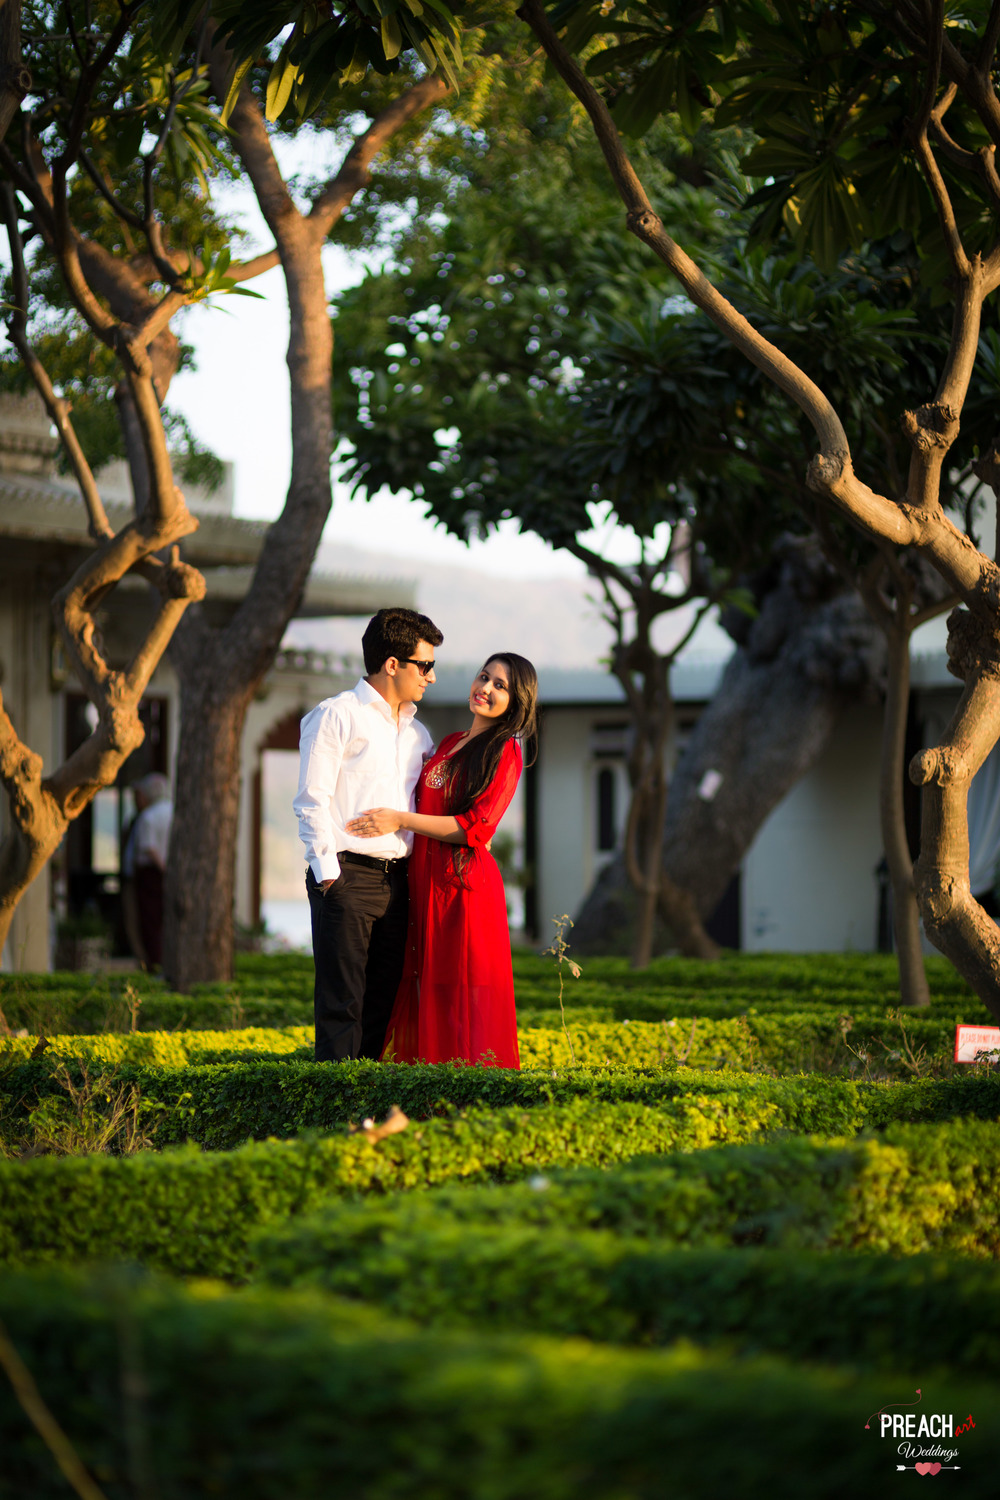 A&B_Udaipur Pre-wedding Shoot_PREACH ART-6.jpg